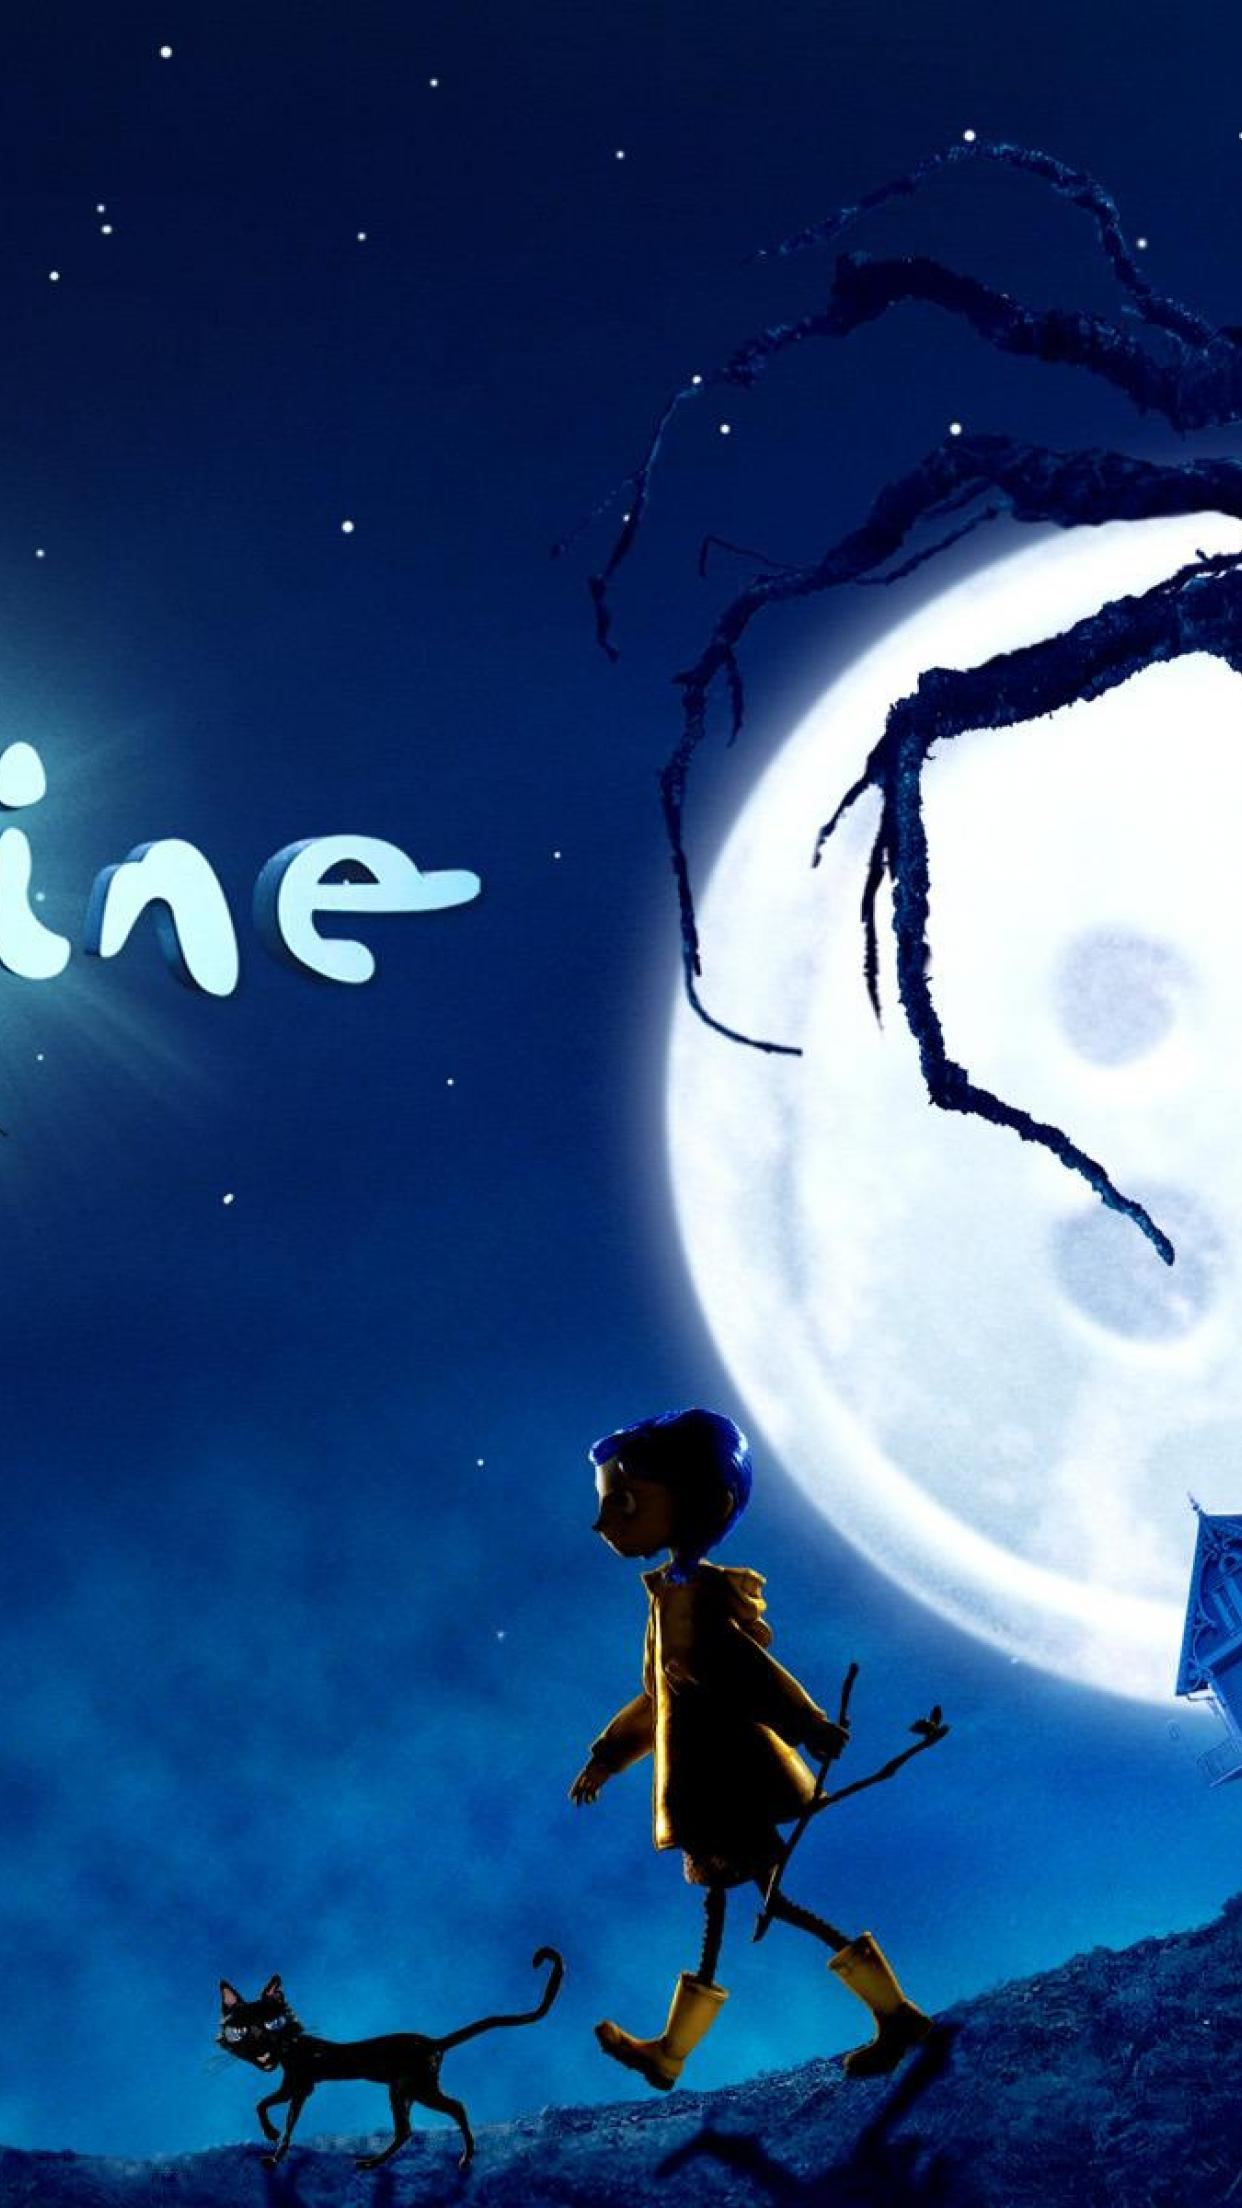 74 Coraline Wallpaper On Wallpapersafari